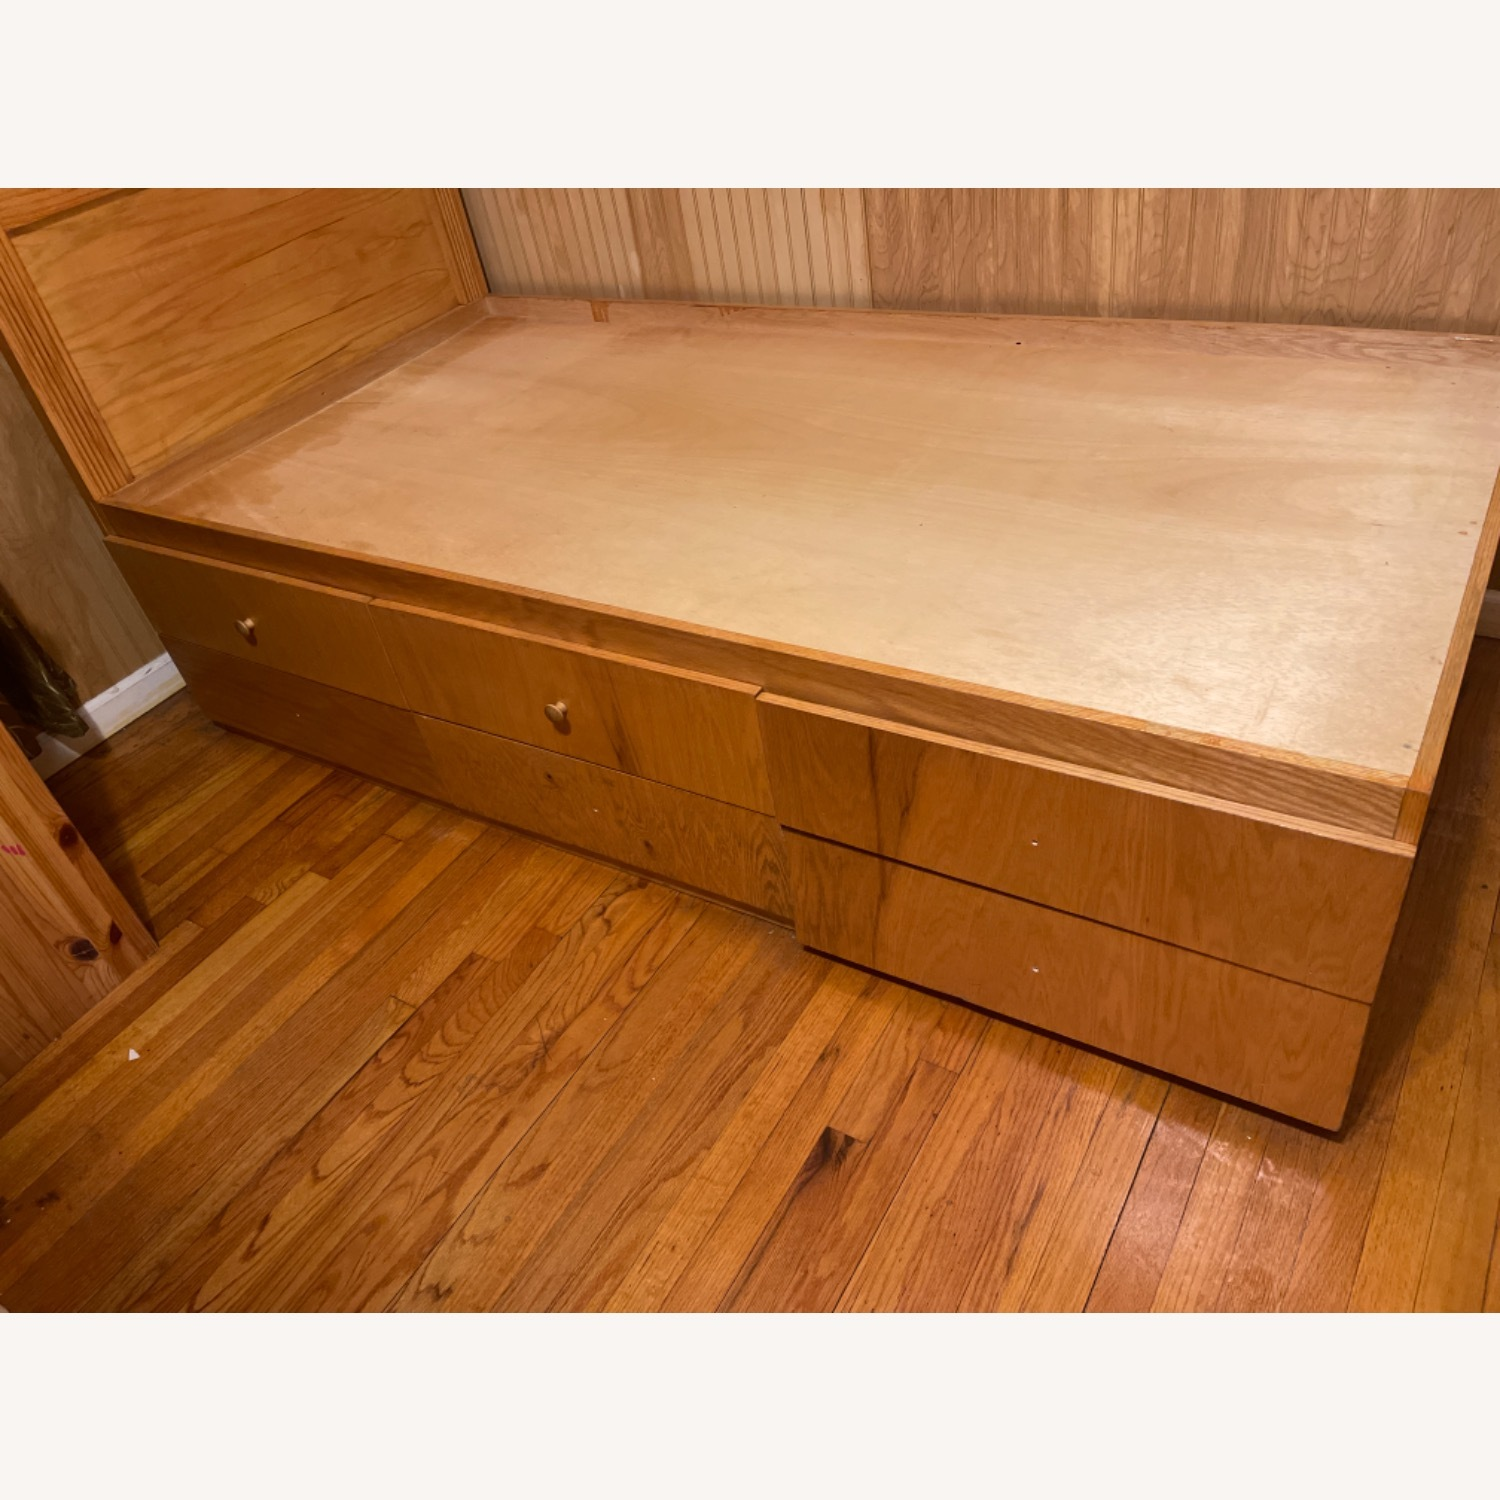 Natural Wood Colour Twin Bed Built-In Storage - image-3